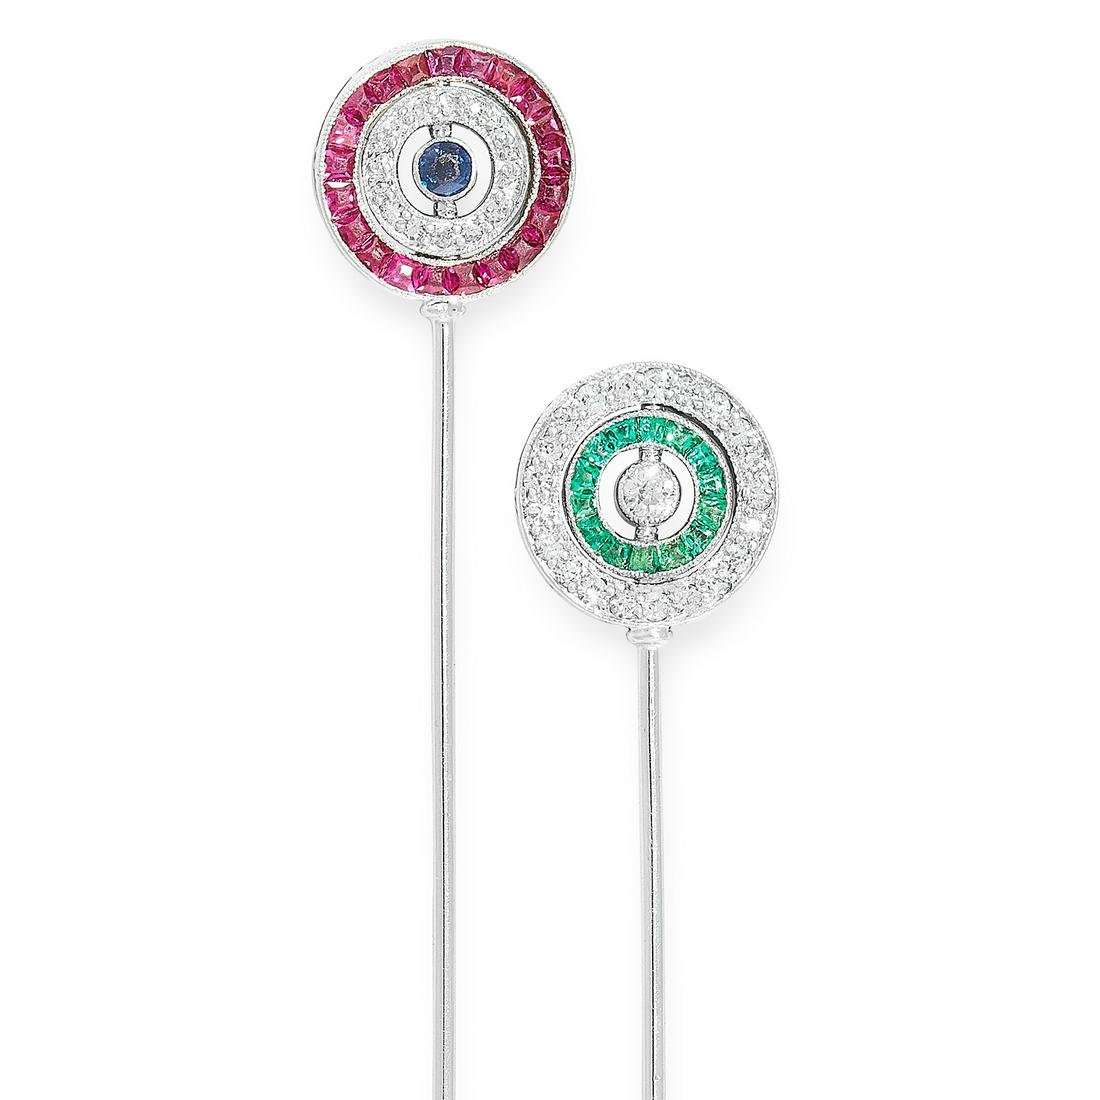 AN ART DECO RUBY, EMERALD, SAPPHIRE AND DIAMOND PIN